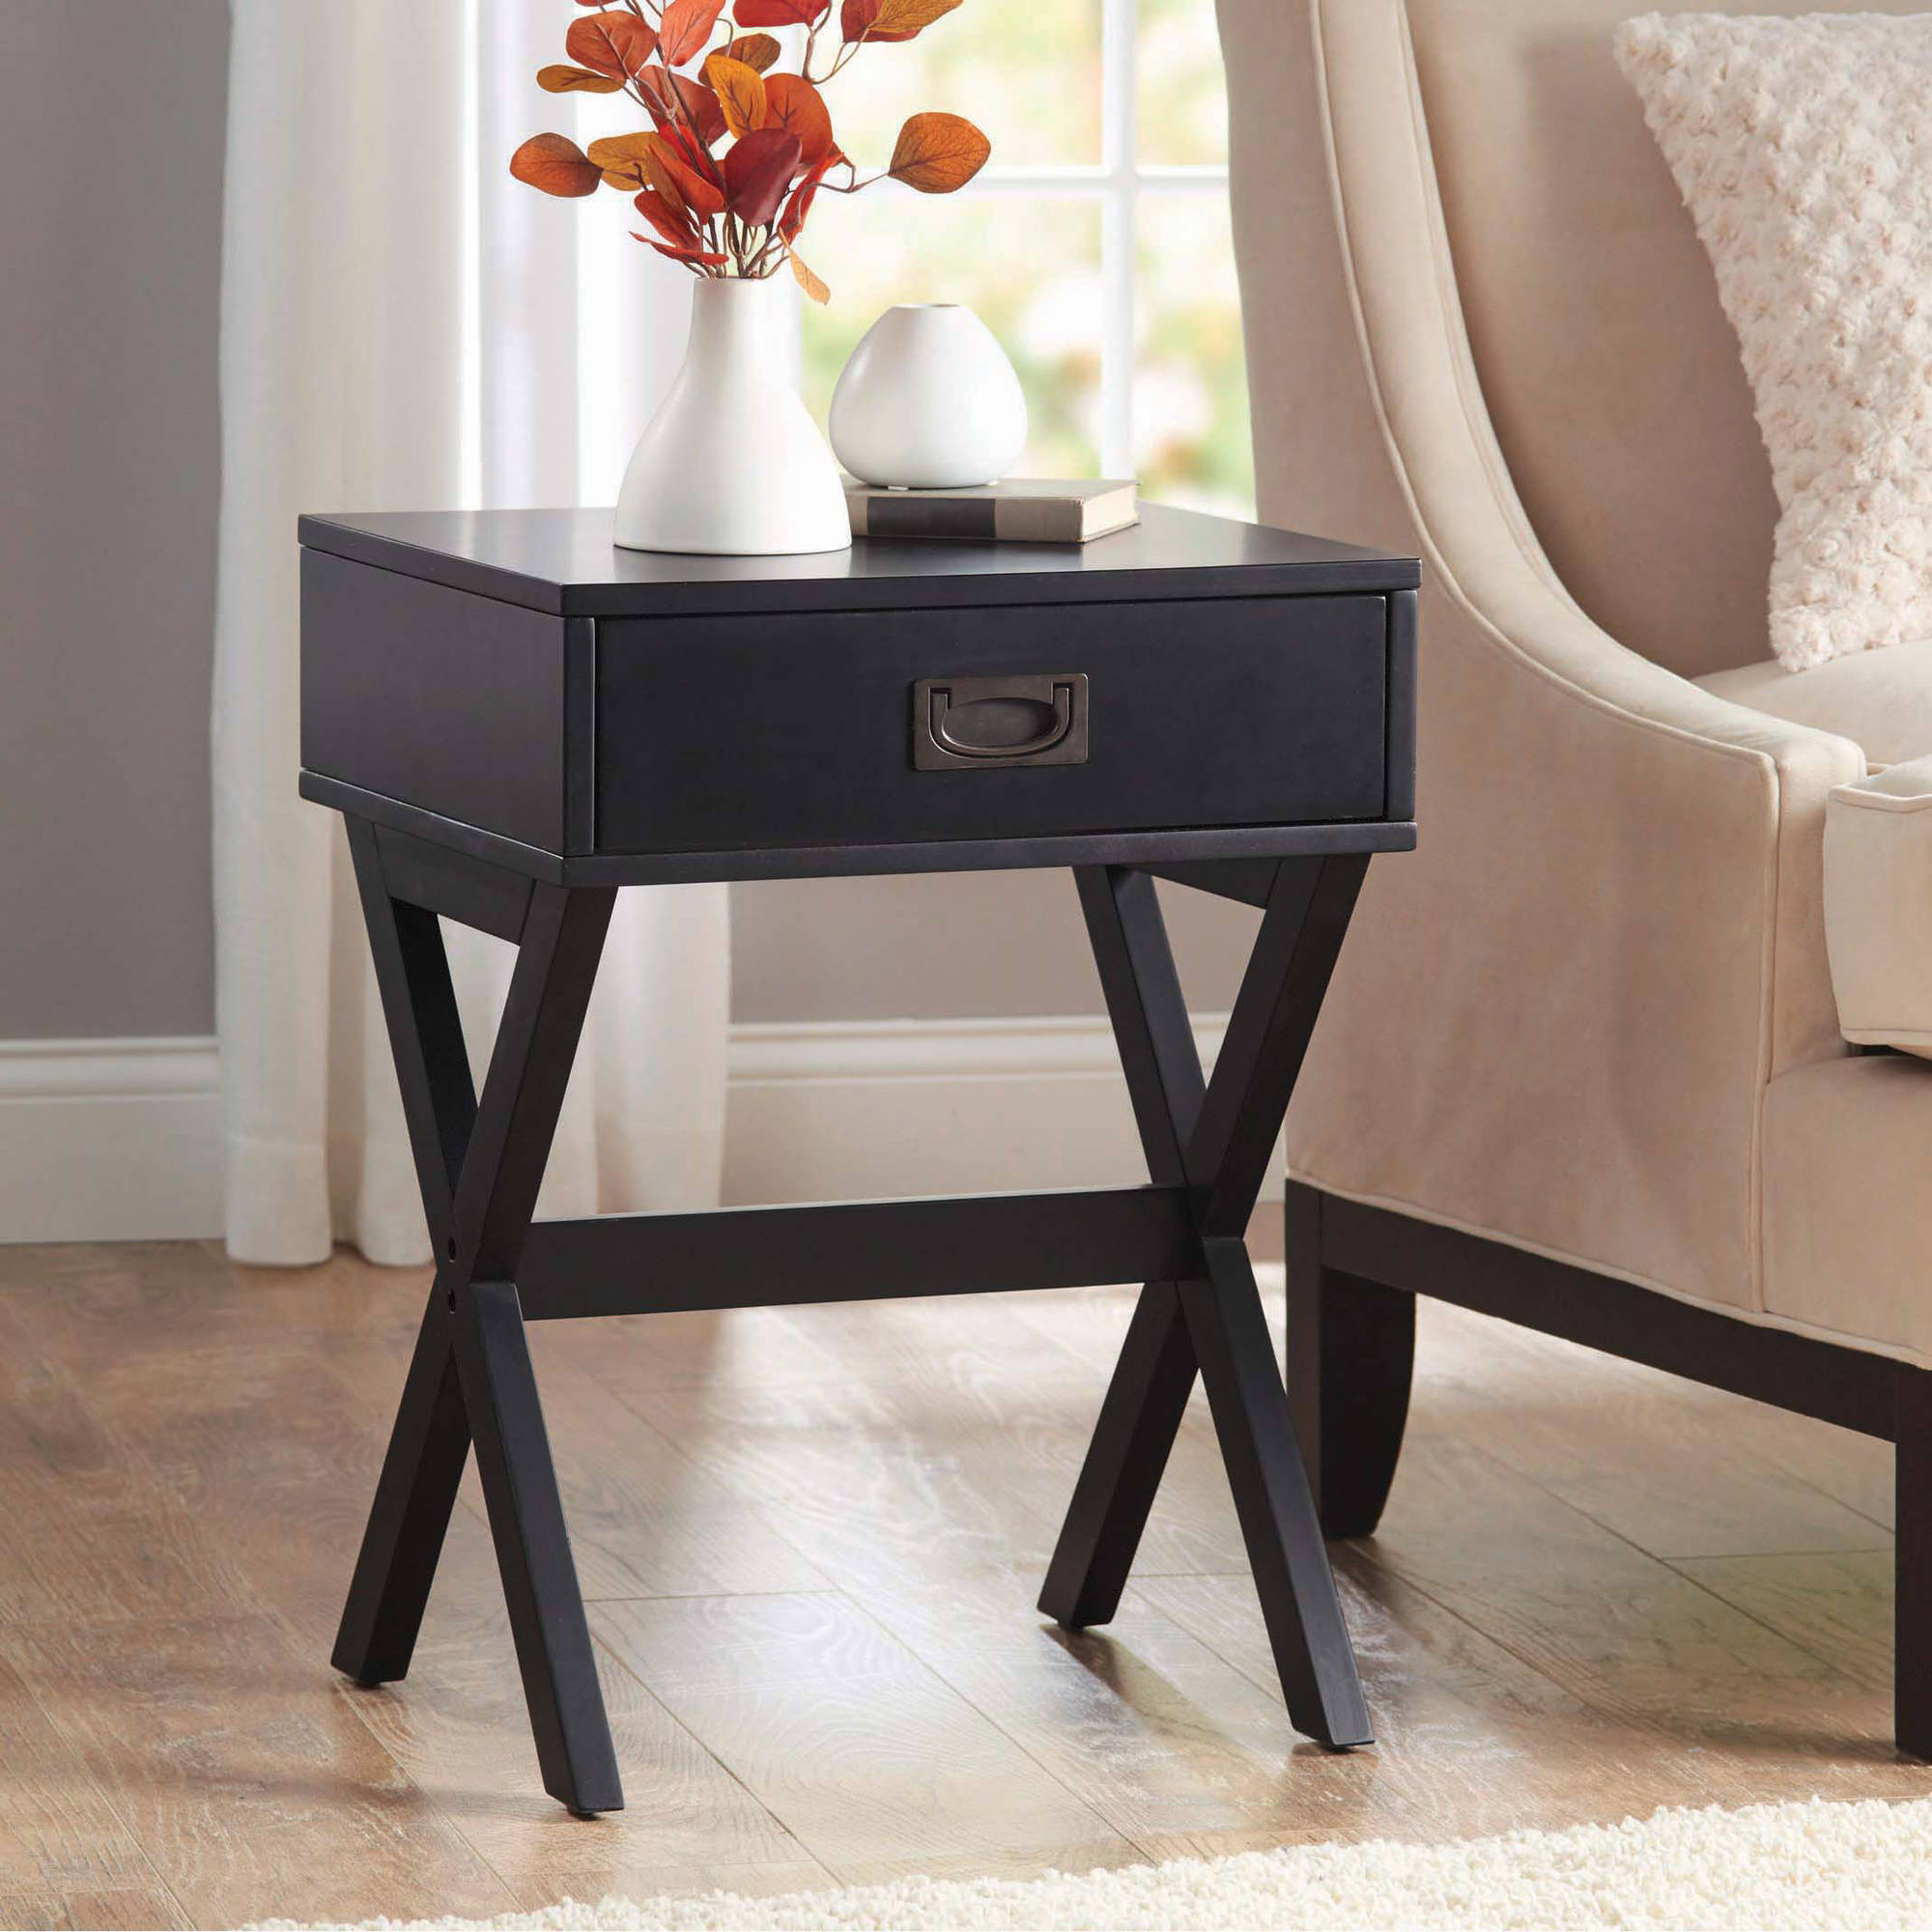 better homes gardens leg accent table with drawer multiple modern black colors bedroom furniture for small rooms gold glass lamp trestle style kitchen patio battery powered